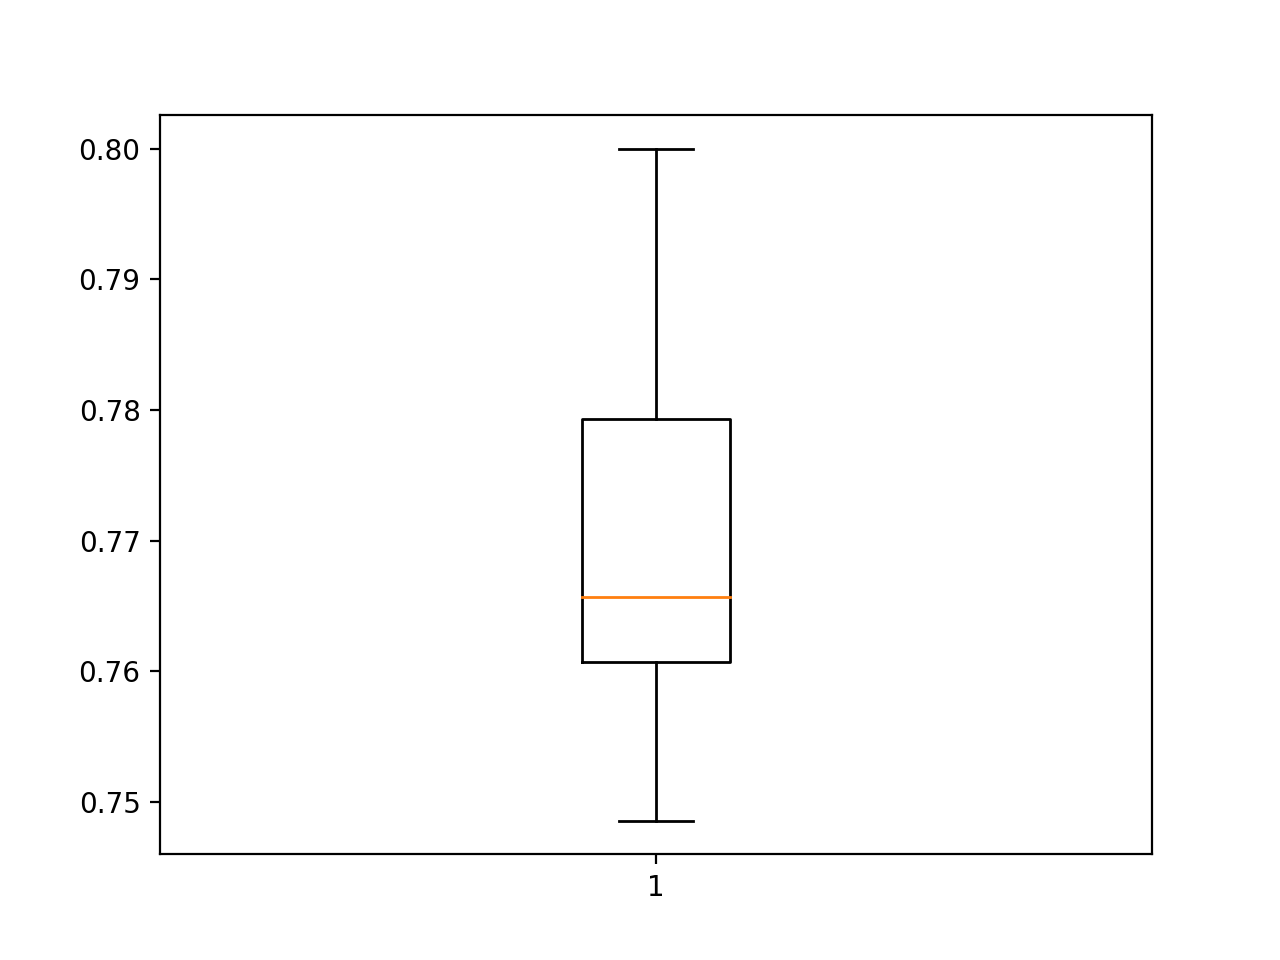 Box and Whisker Plot of Model Test Accuracy Over 30 Repeats